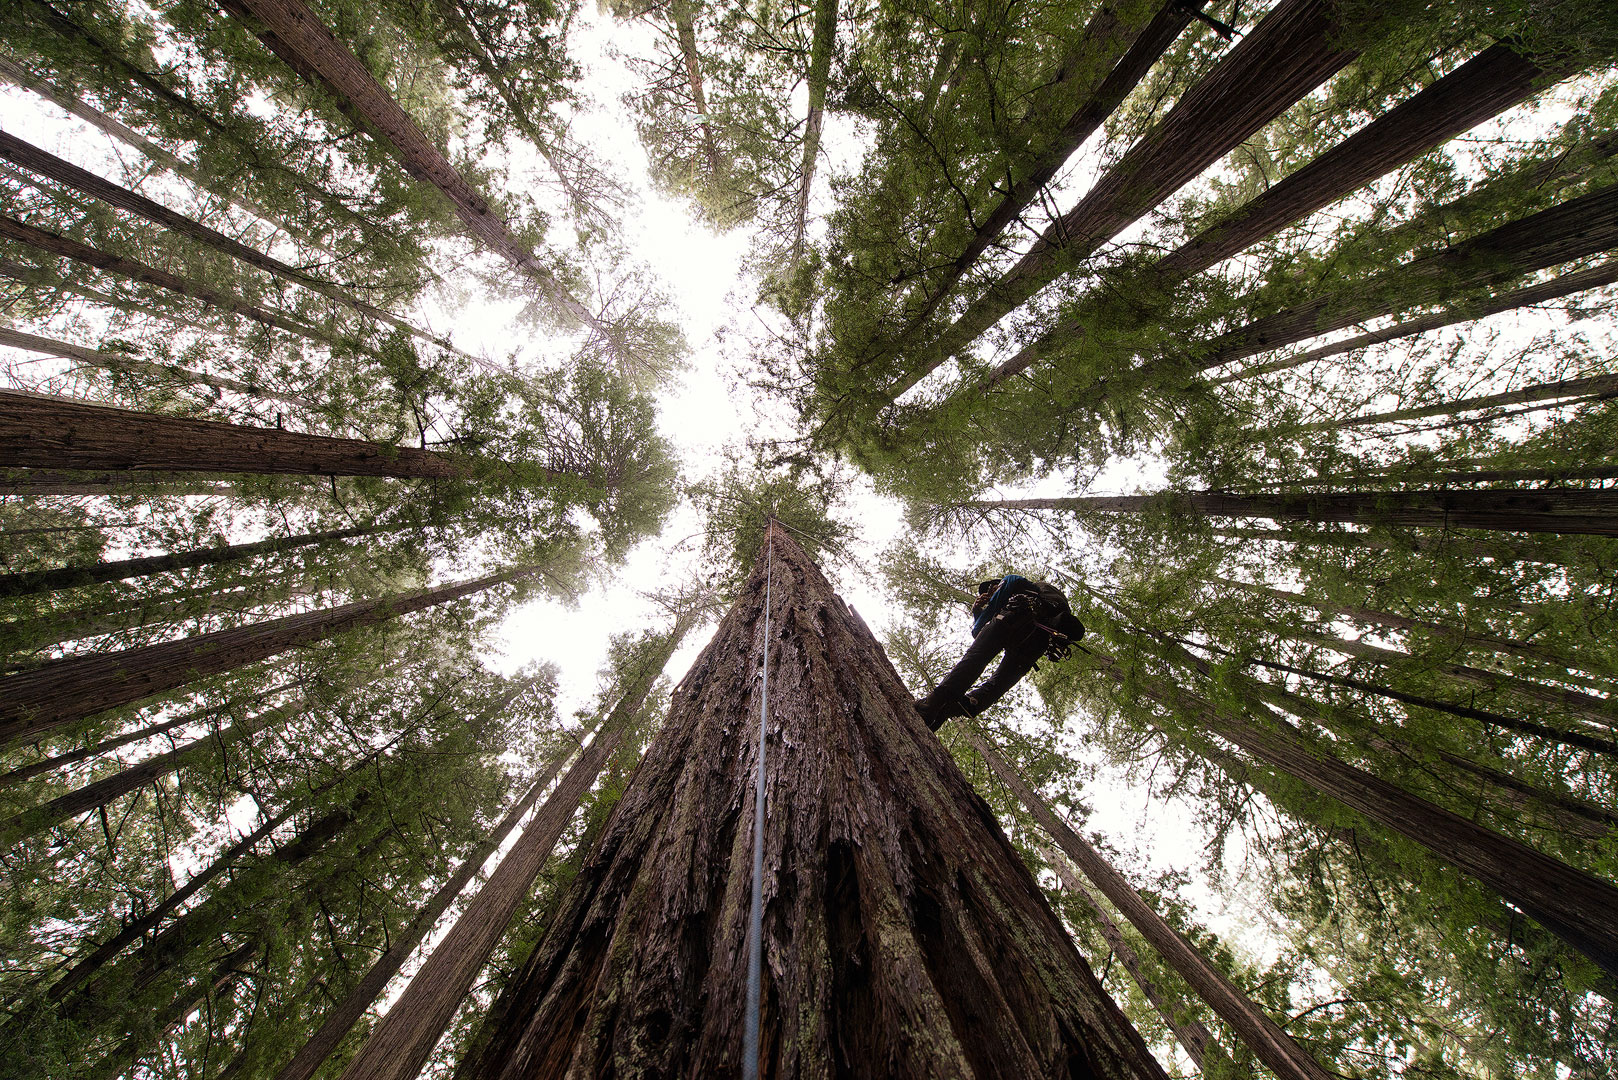 Humboldt Redwoods State Park, California, Giant Redwoods, Redwoods, Trees, Amazing Trees, Oldest Trees, Bernard Chen, photo